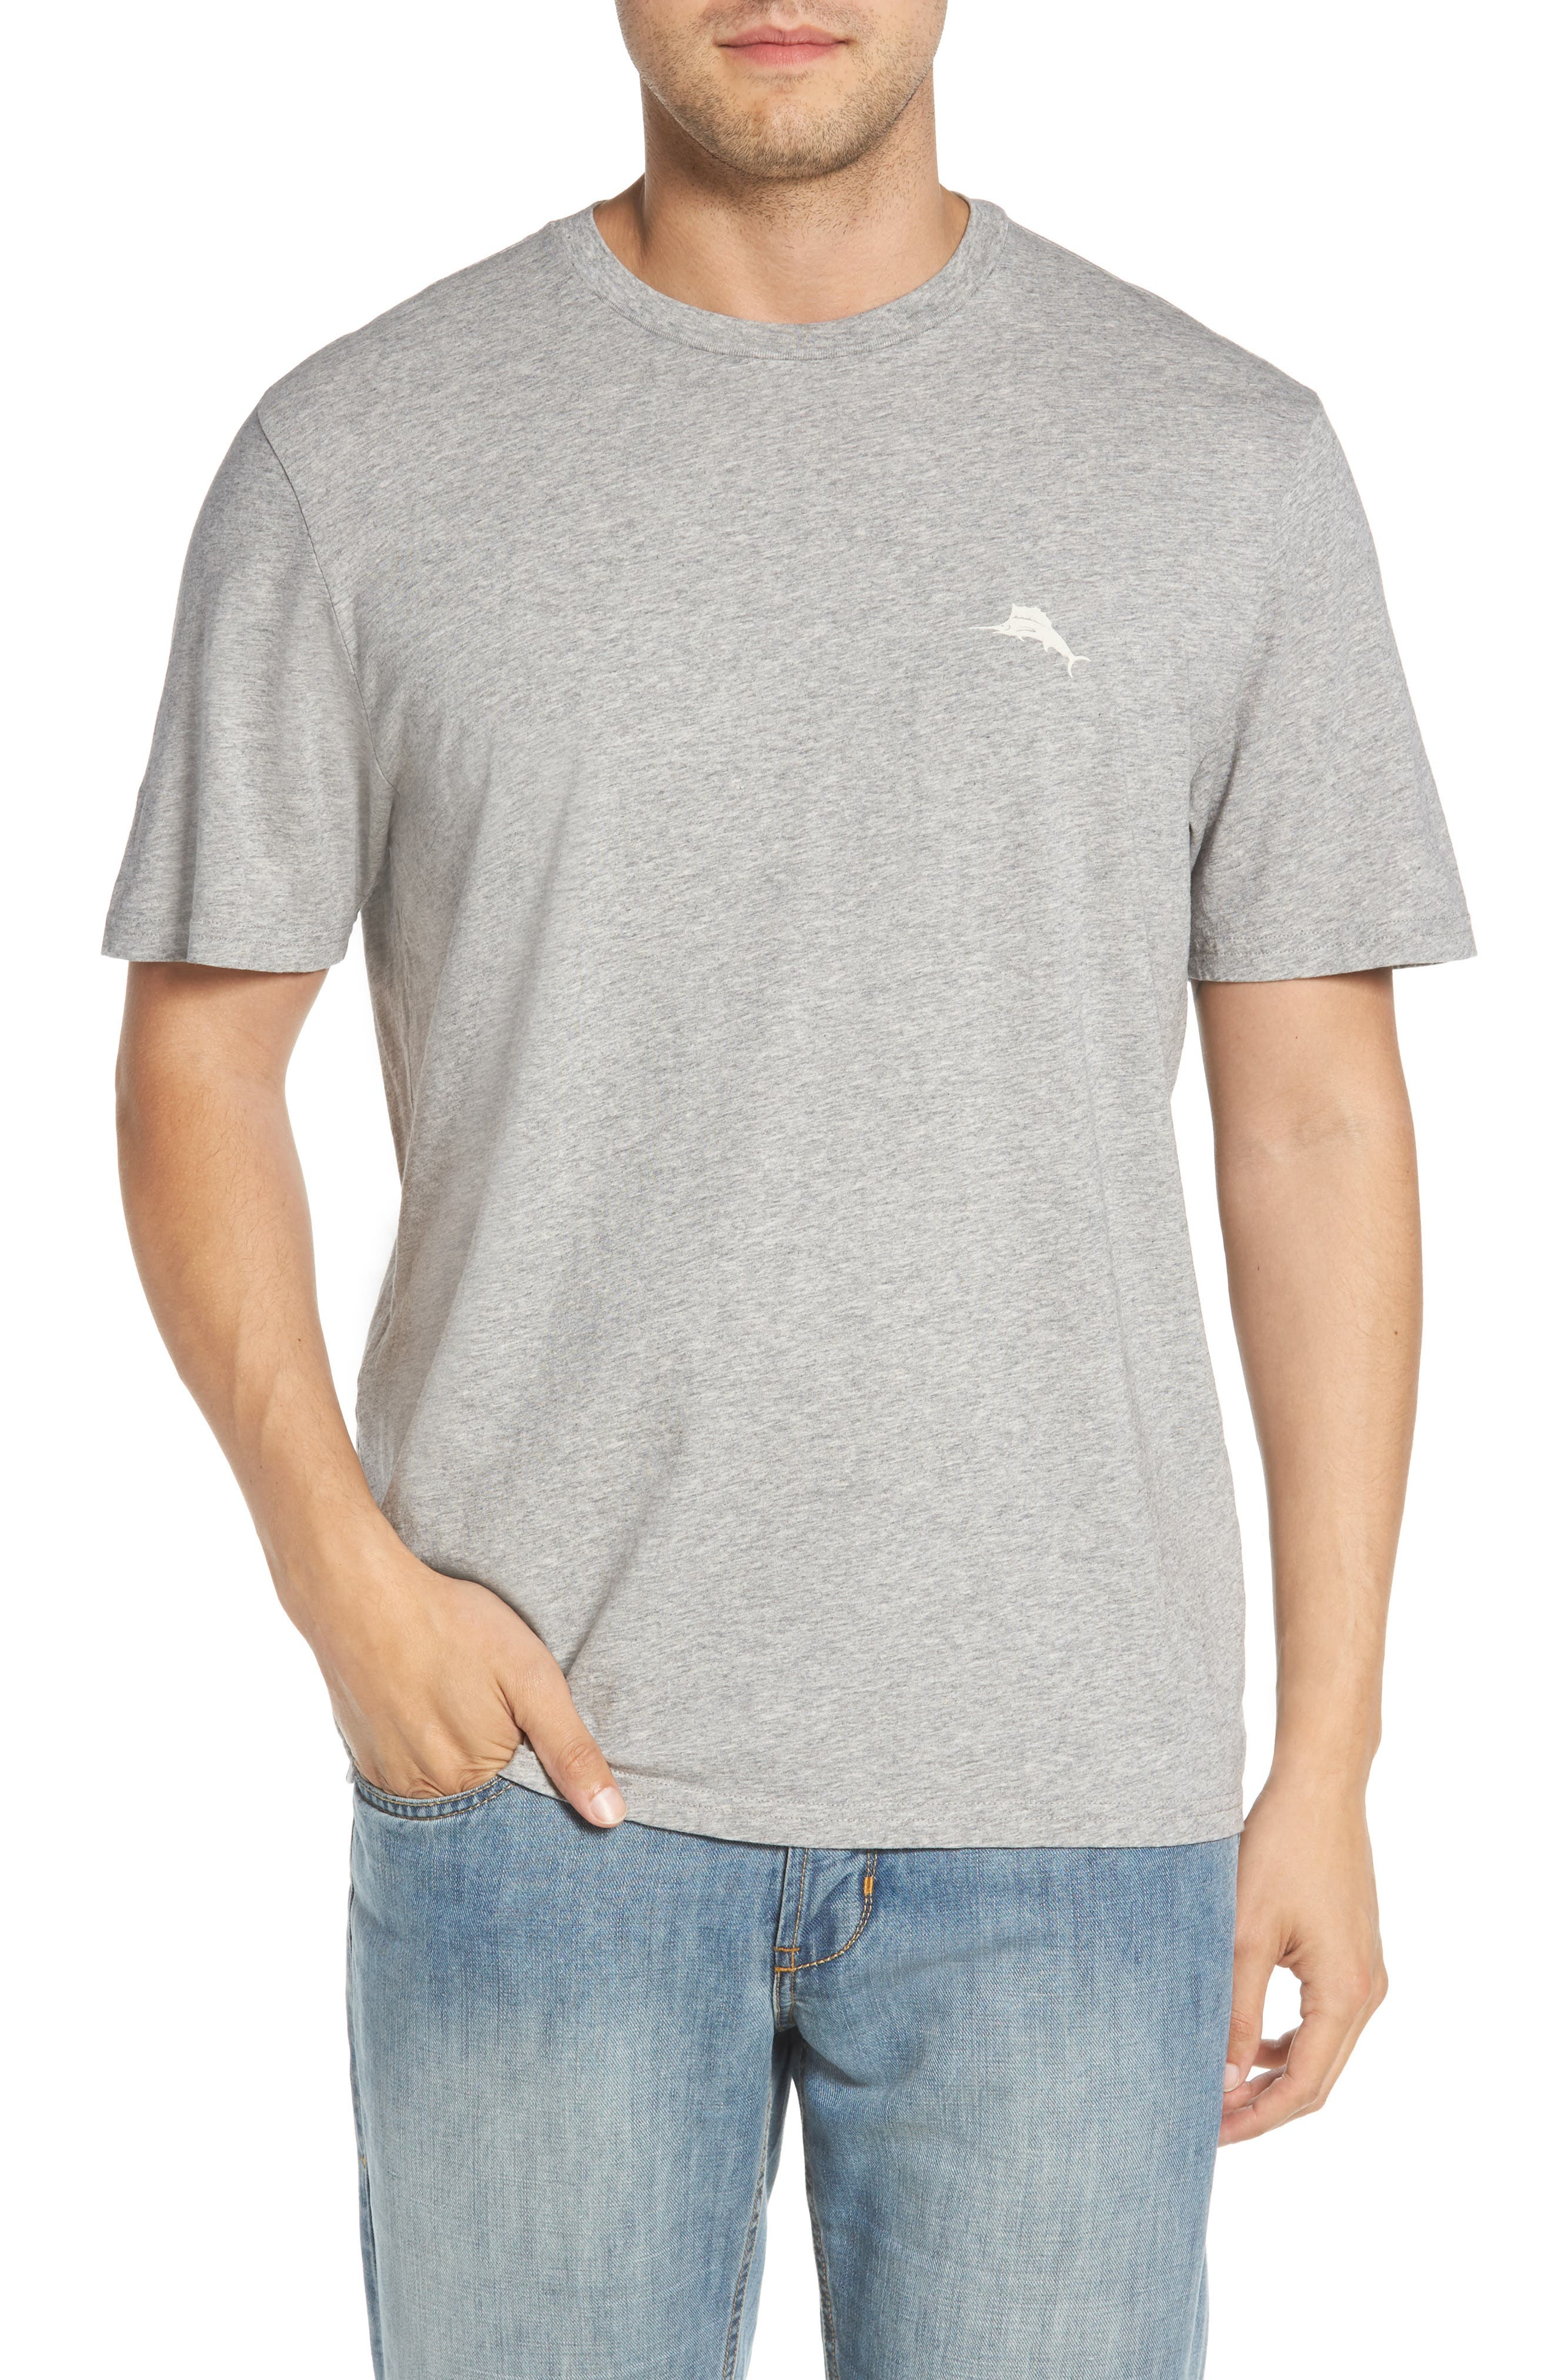 Vacation Collage T-Shirt,                         Main,                         color, Grey Heather